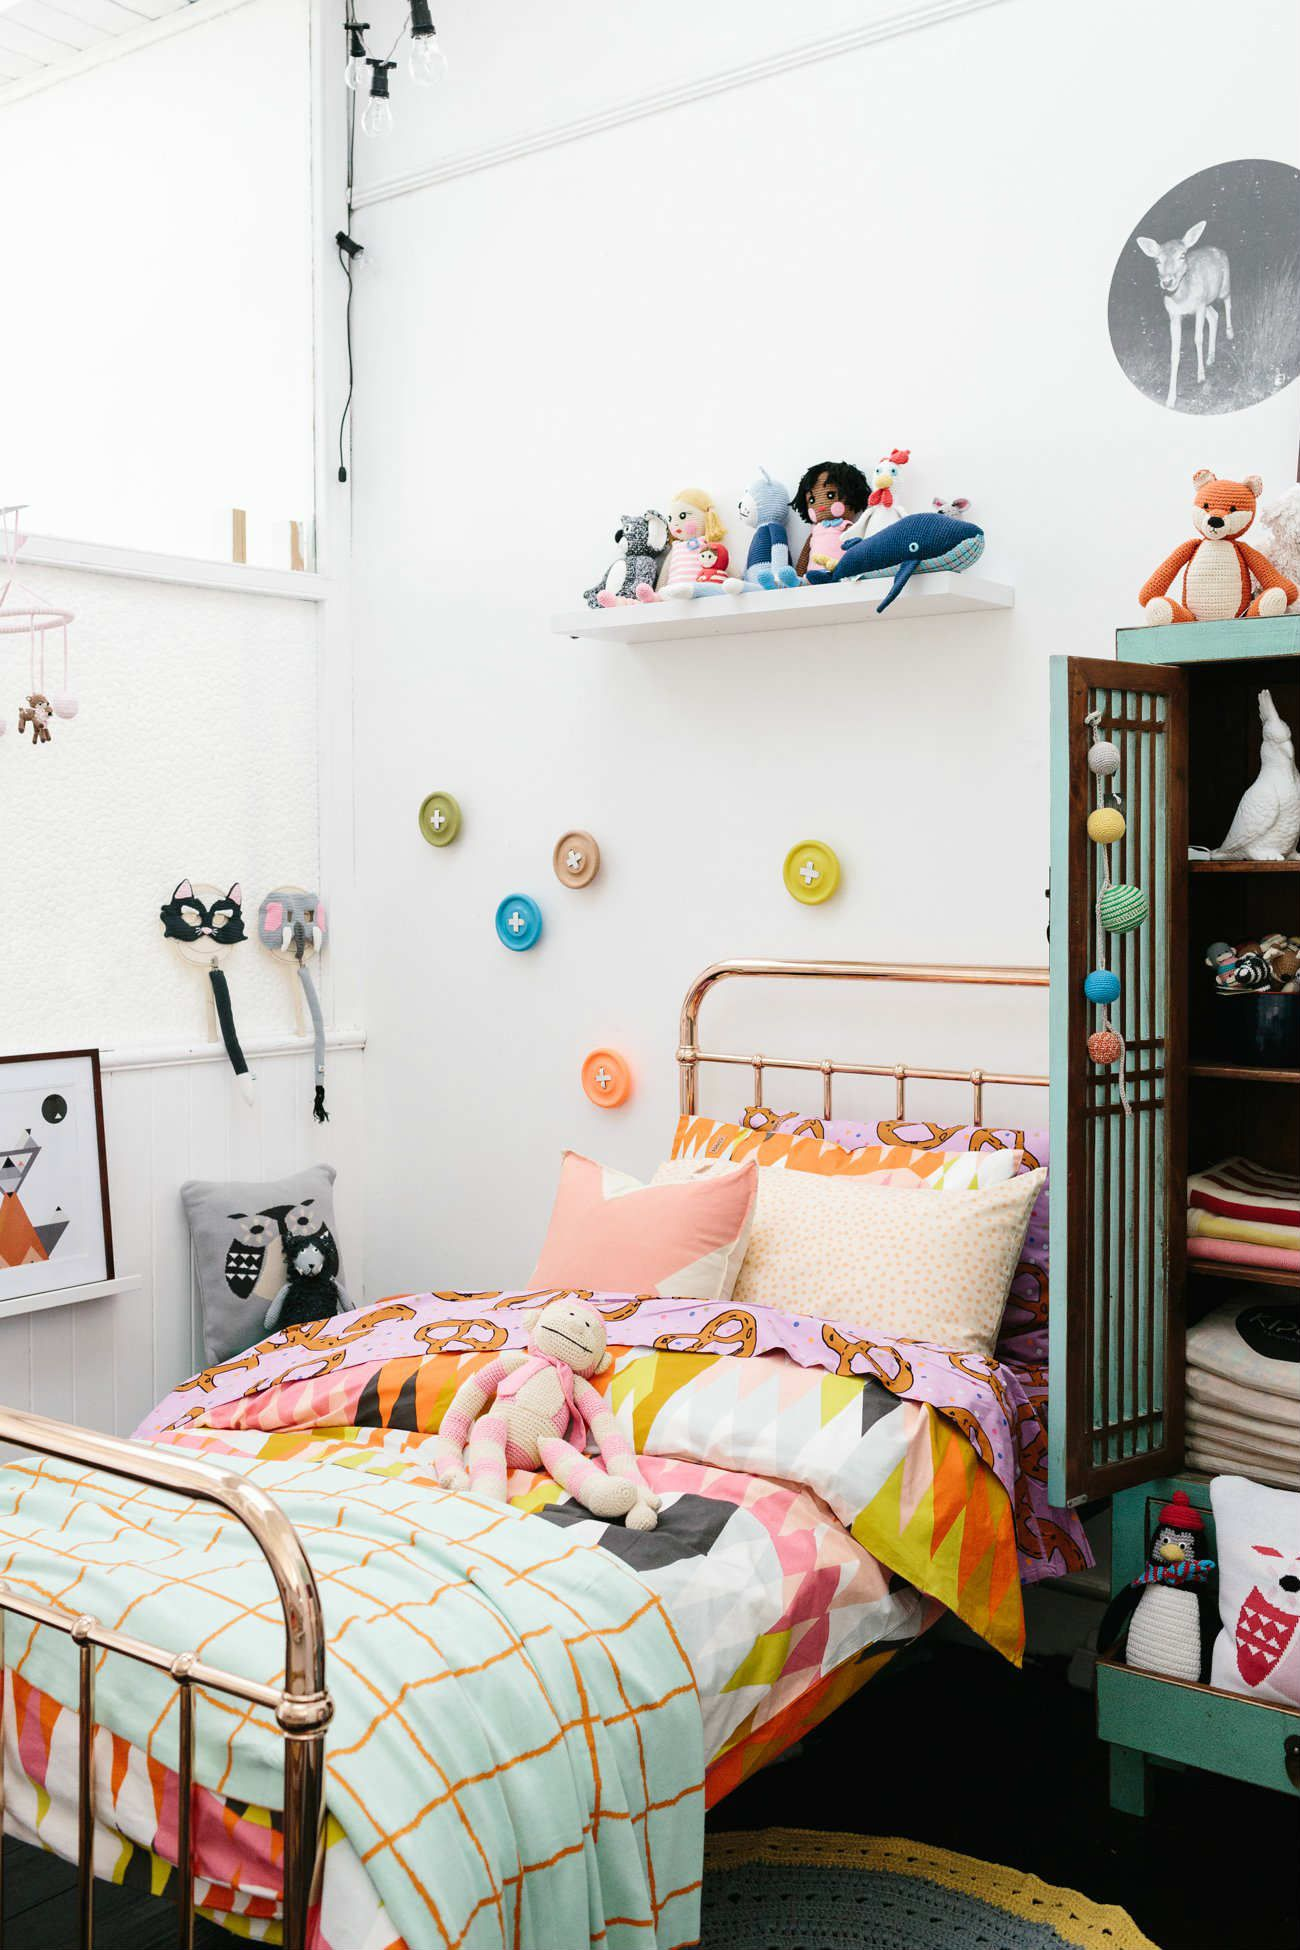 Eclectic quilt cover | 10 Awesome Kids Bedding - Tinyme Blog